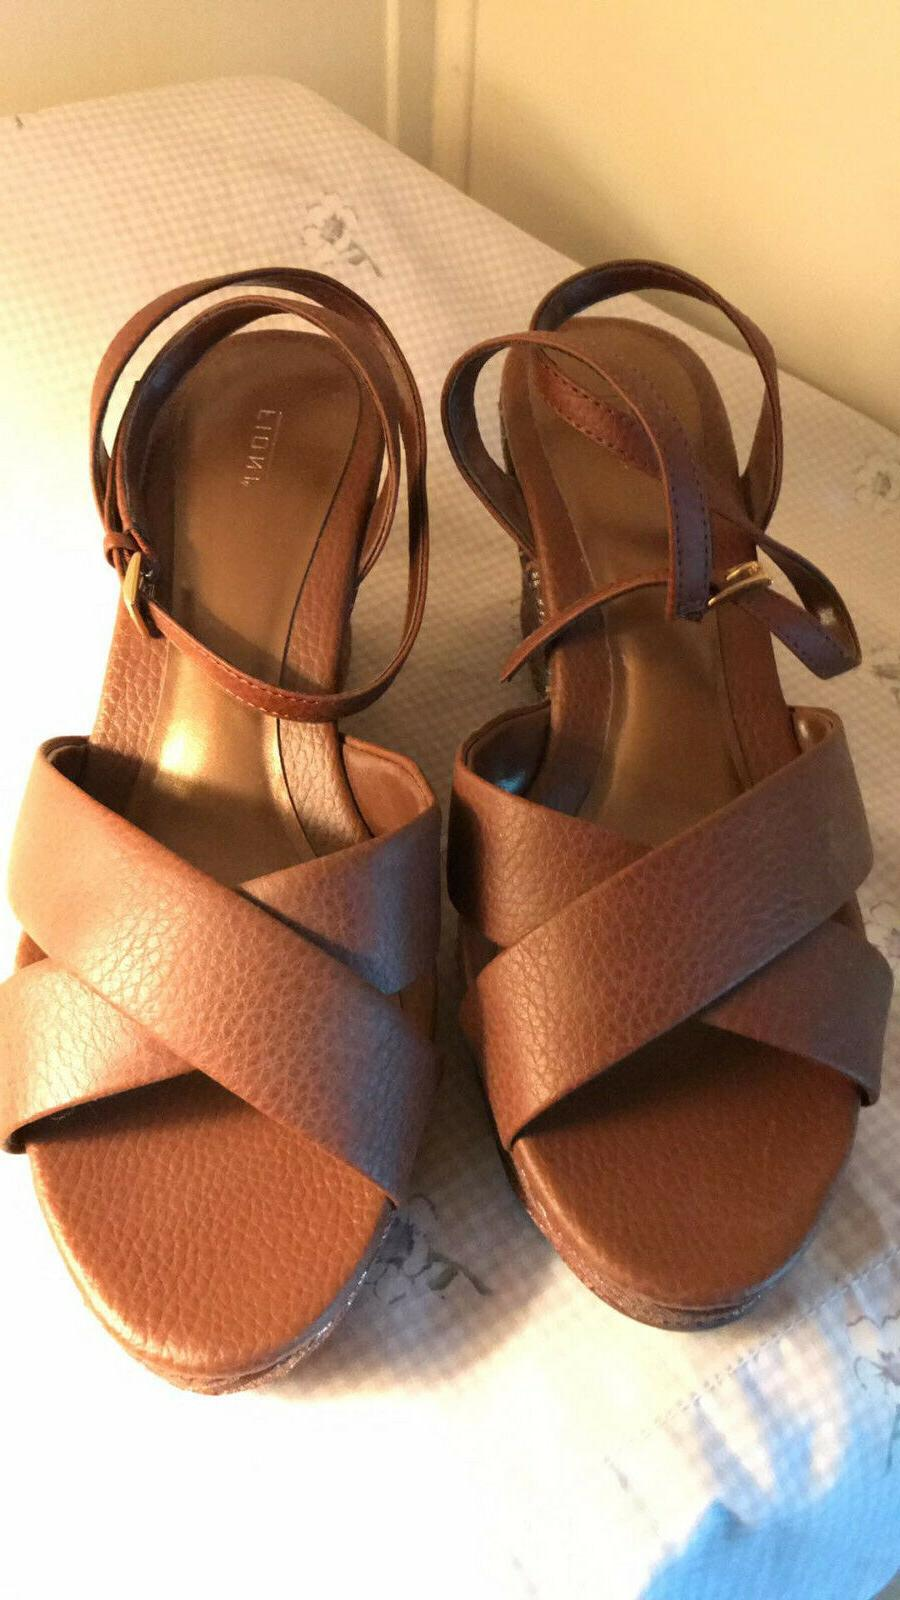 LADIES WOMENS WEDGE SANDALS SZ ANKLE WOMENS SHOES FREE